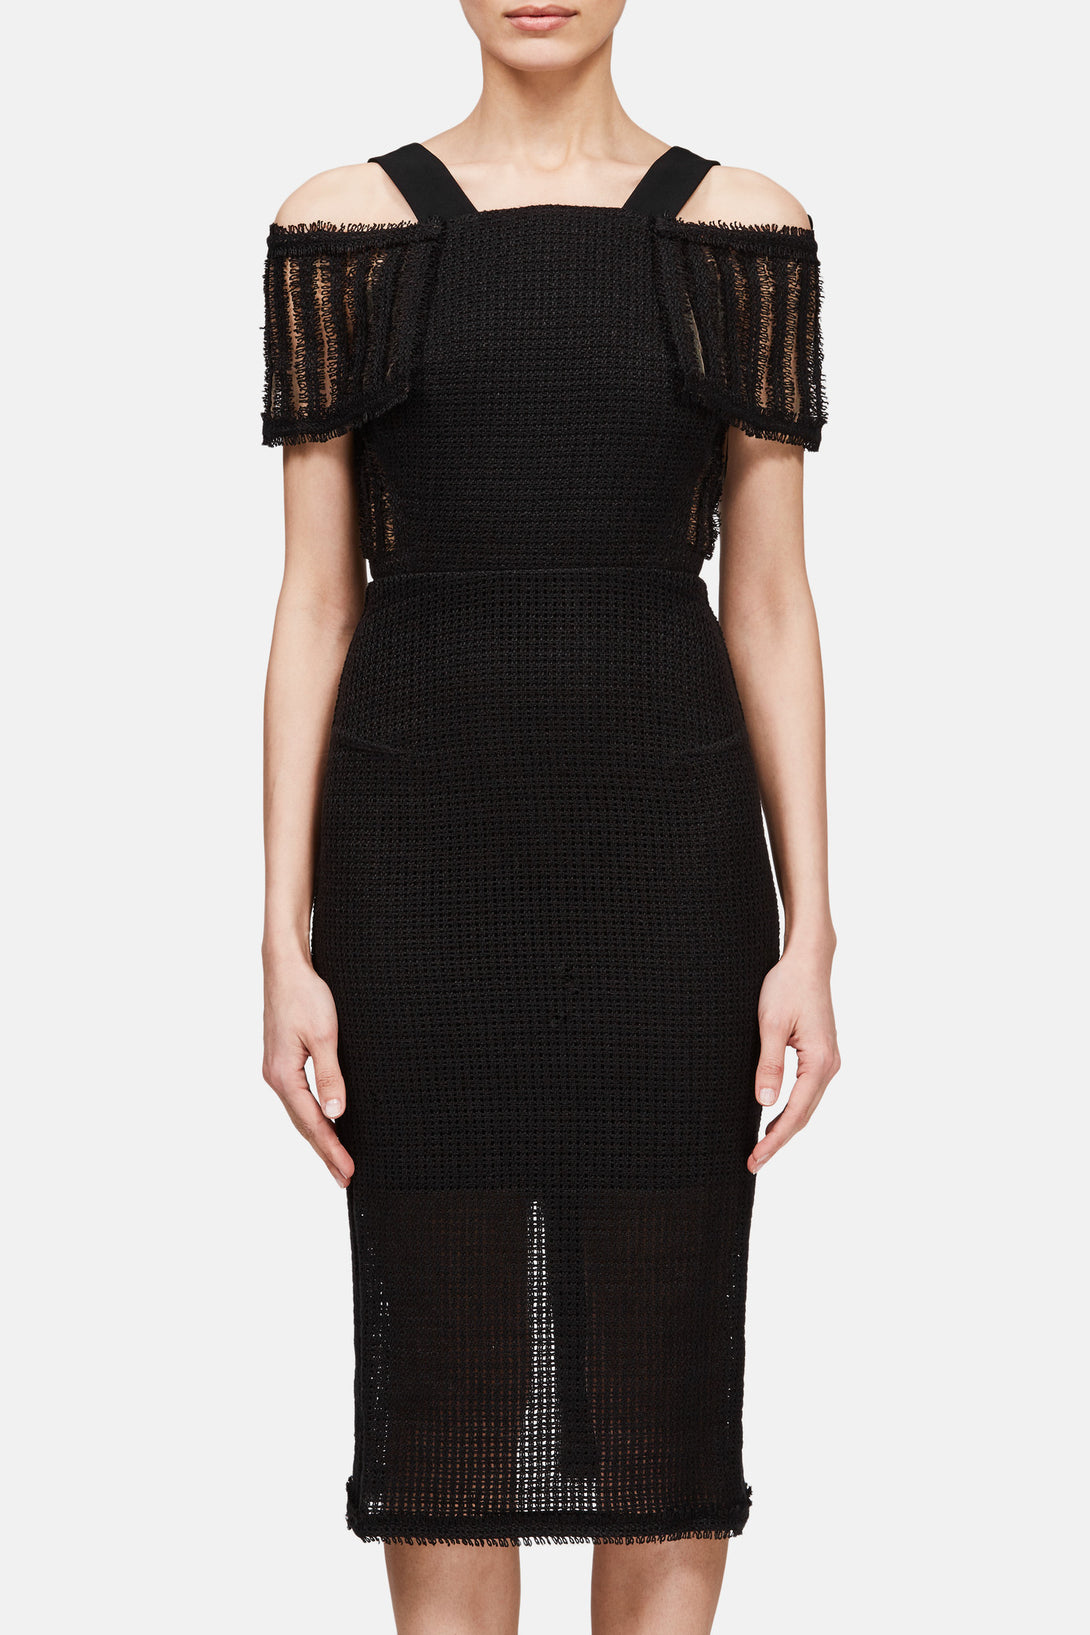 Sinclair Dress - Black